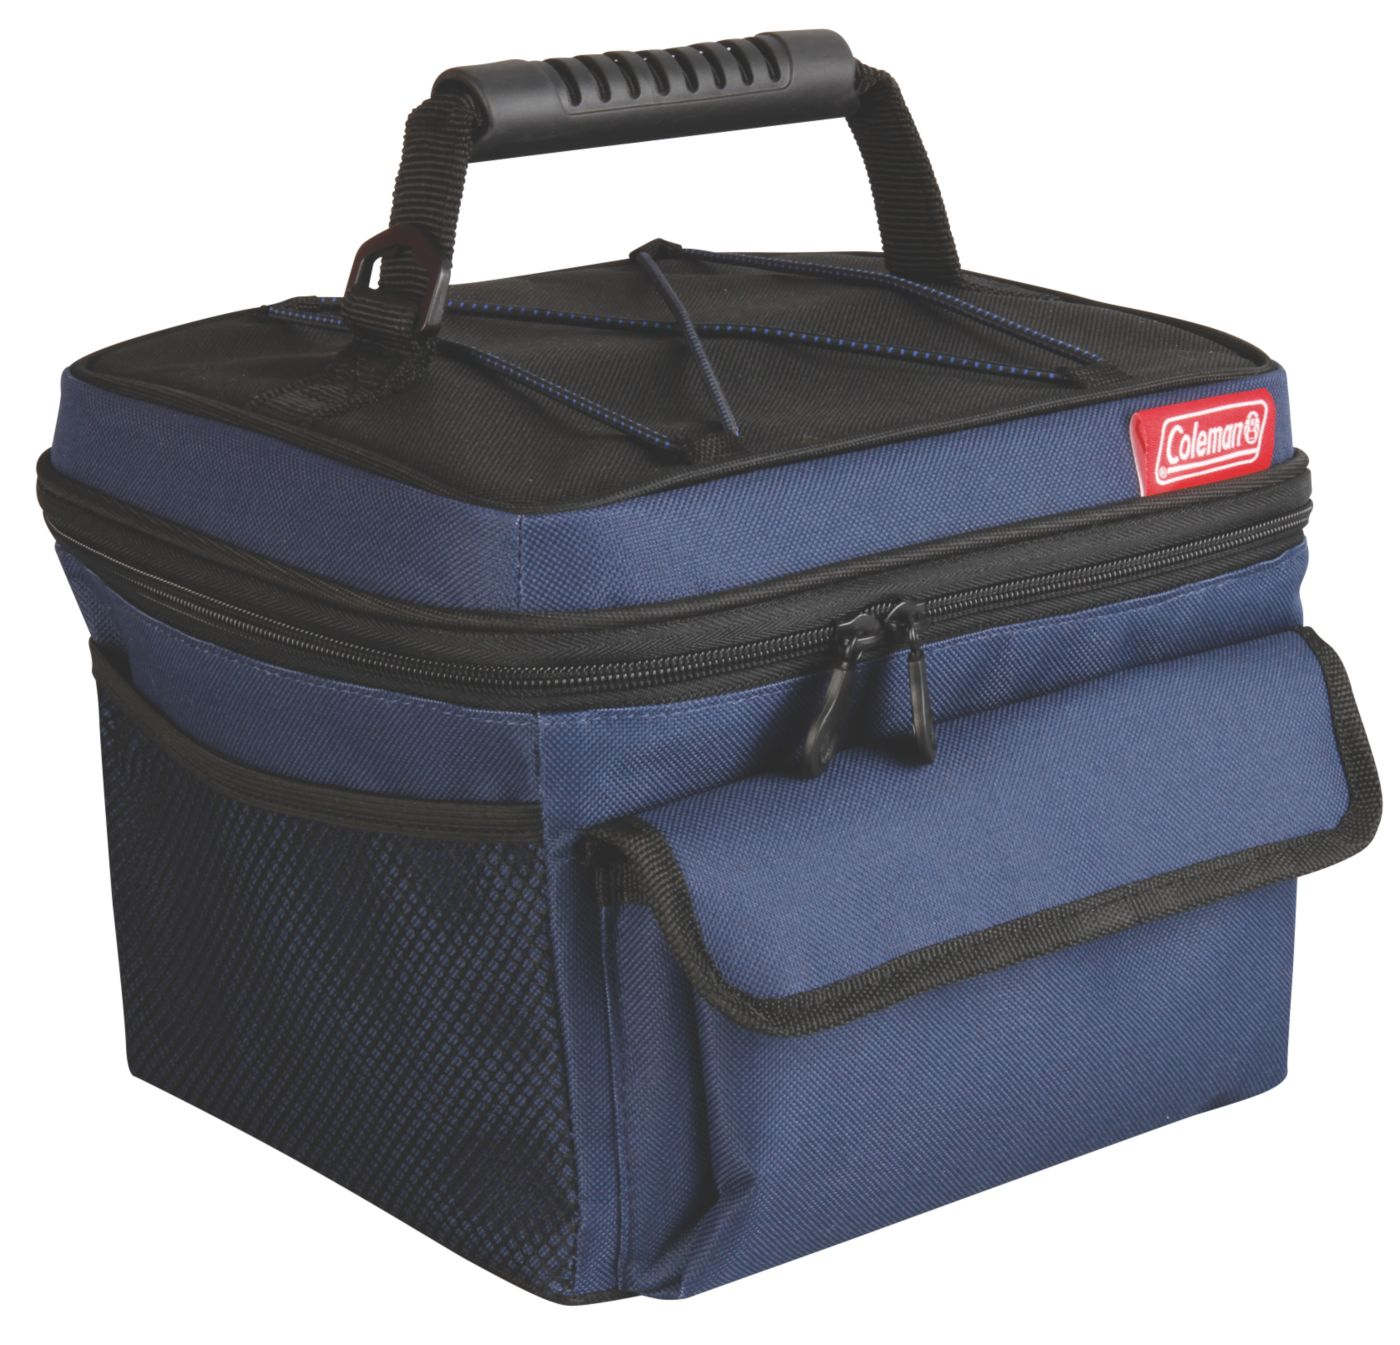 10 can rugged lunch cooler - Soft Sided Coolers